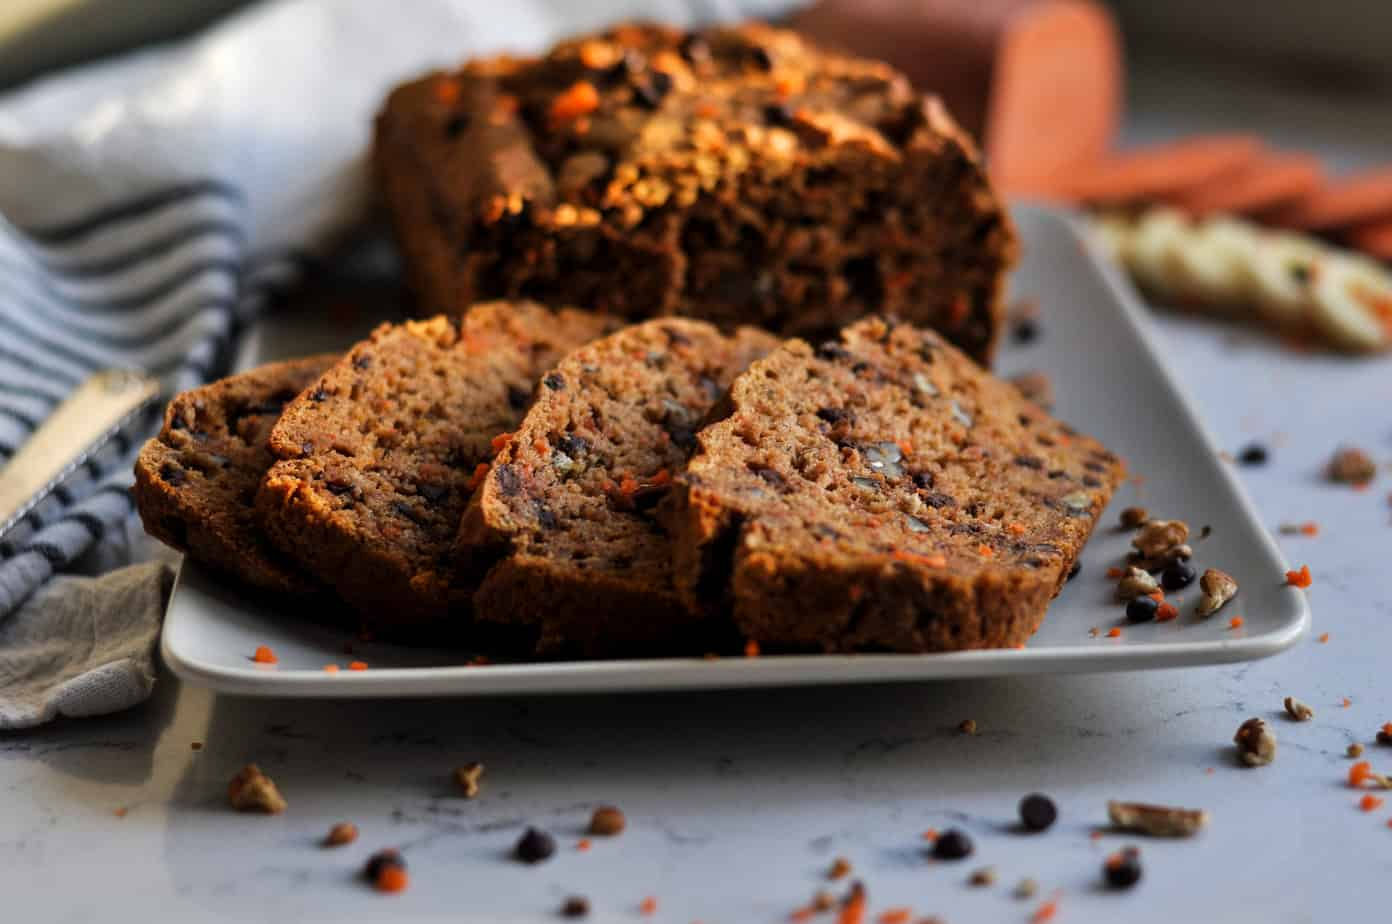 Carrot Chocolate Chip Bread  Image credit: Ana Ankeny